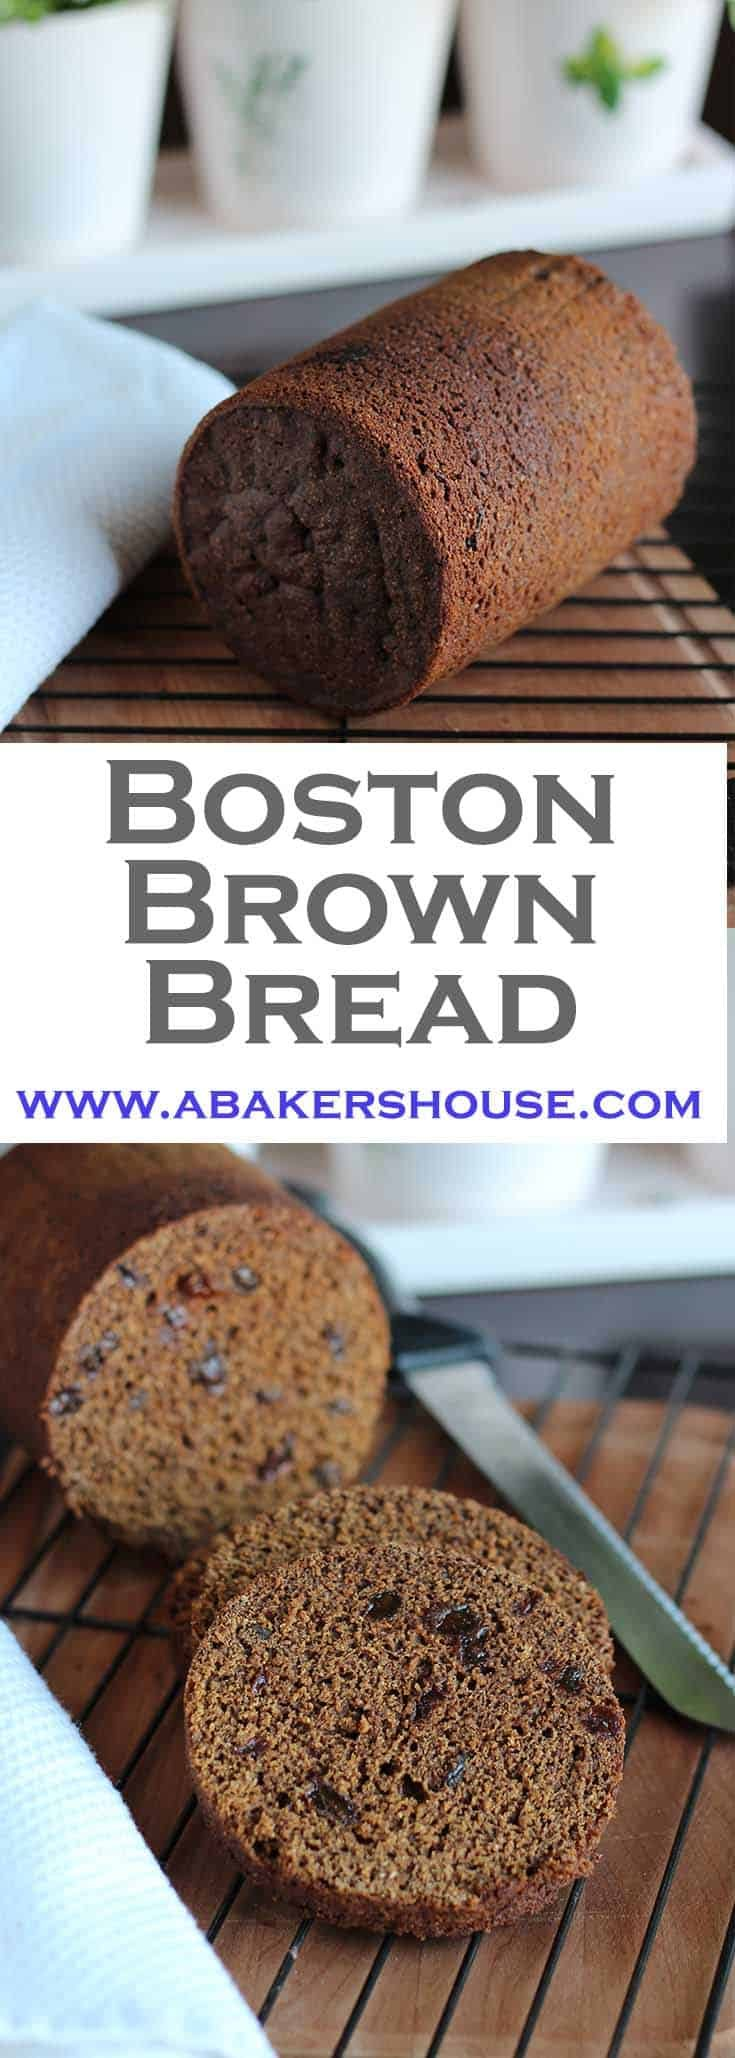 Bread baked in a can? Yes! Try this recipe for Boston Brown Bread from the Epicurious site. It's a unique bread steamed in a tin can such as a coffee container.